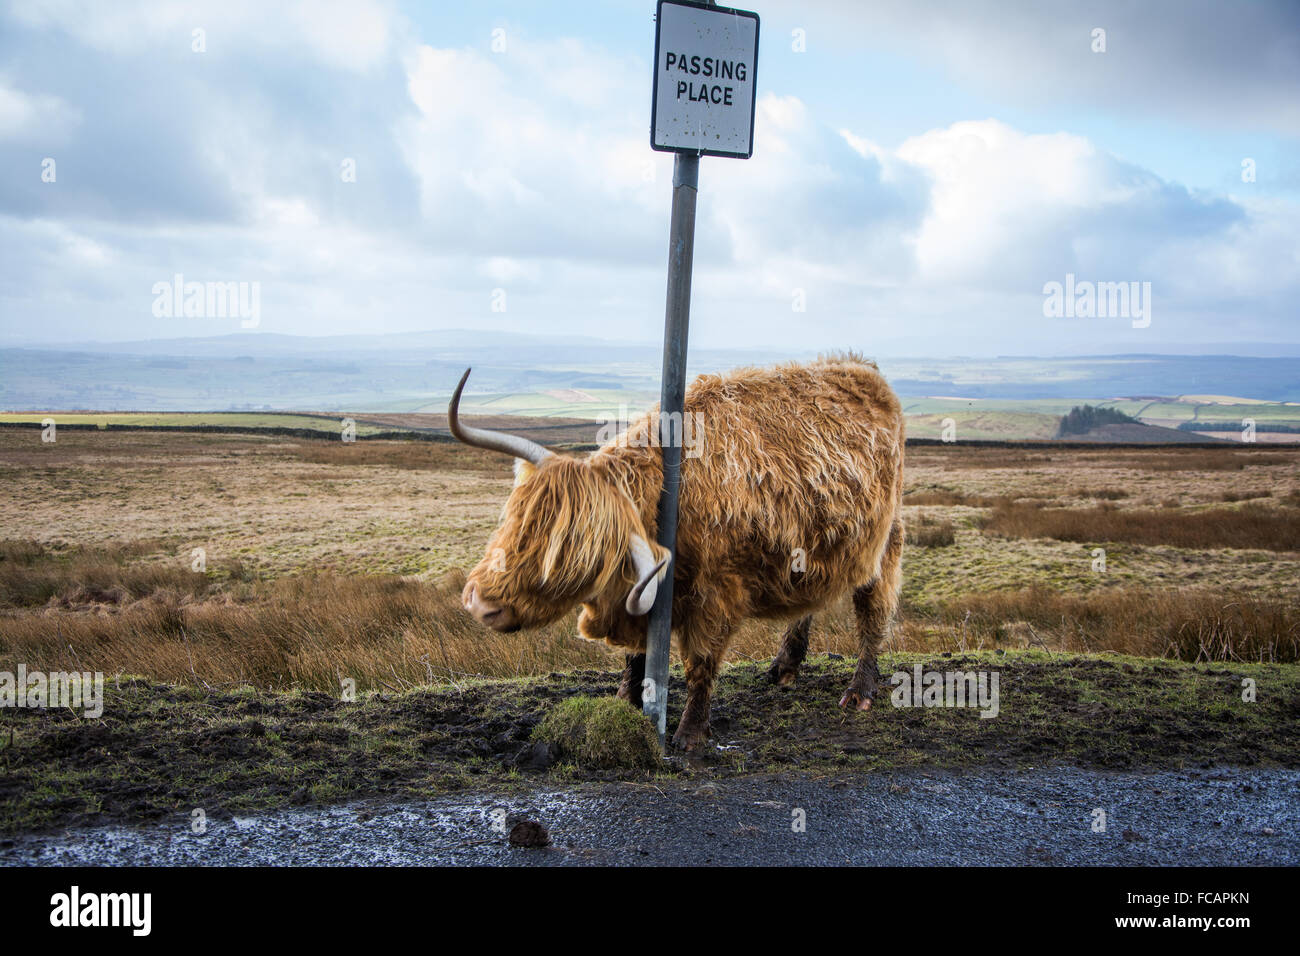 Highland Cow near Malham in the Yorkshire DalesStock Photo